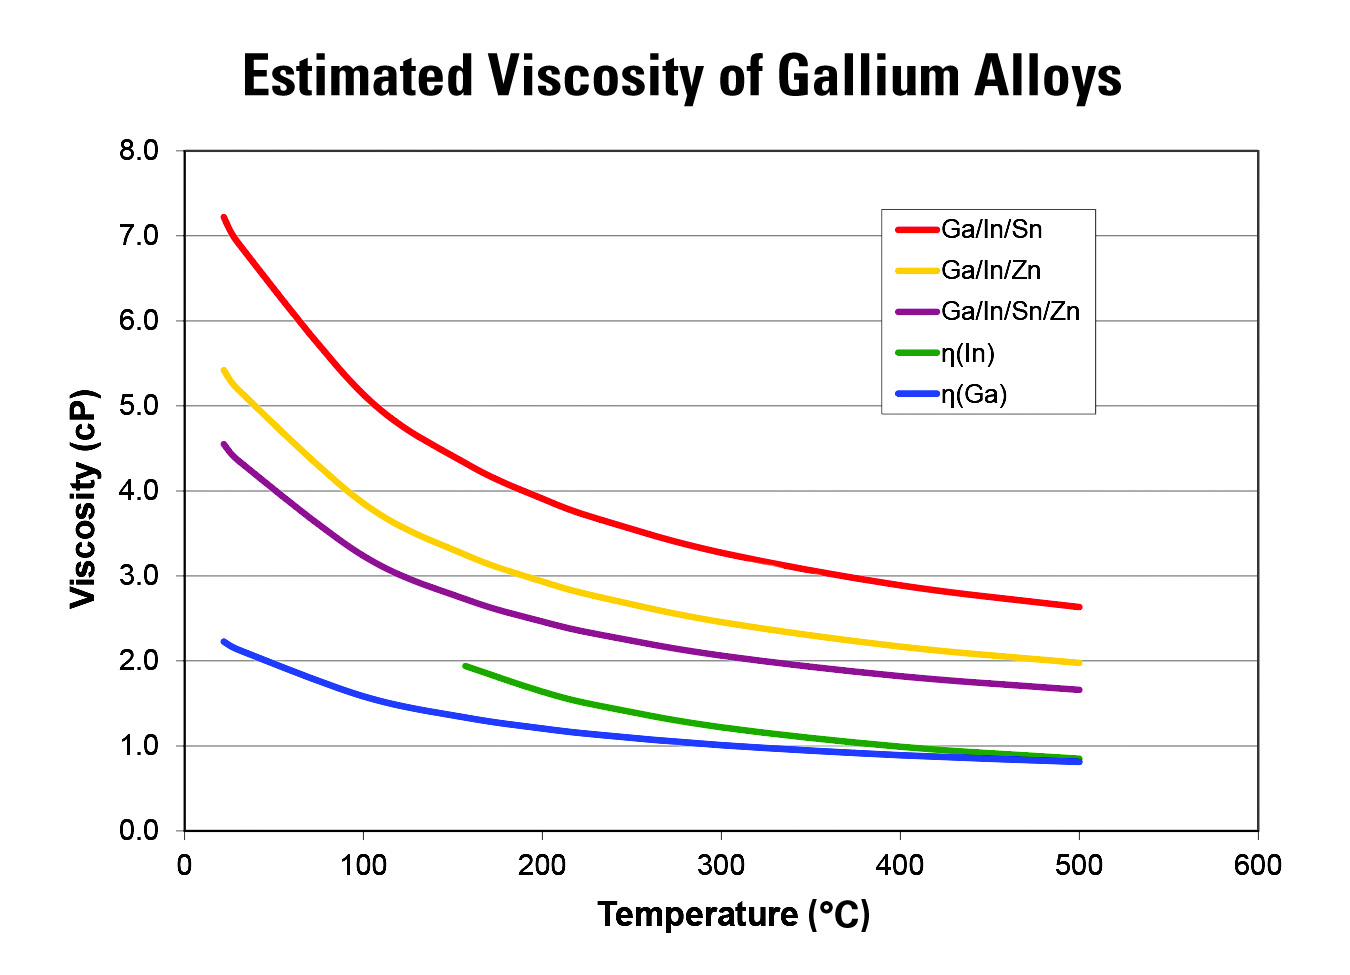 Chart of Estimated Viscosity of Gallium Alloys